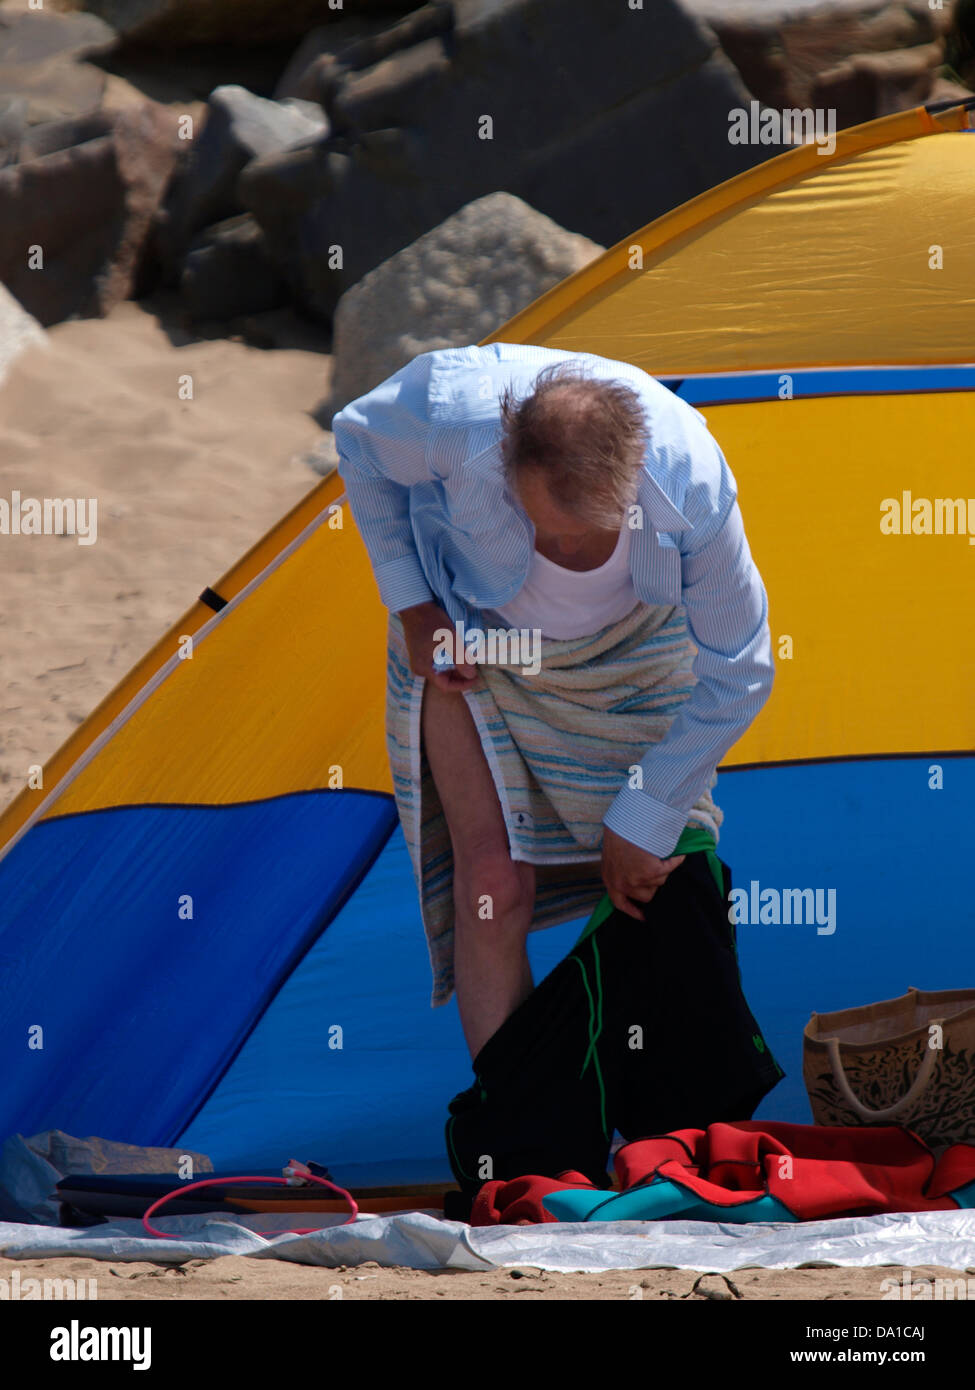 Old man trying to put on swim shorts on with towel around waist at the beach, Cornwall, UK 2013 - Stock Image